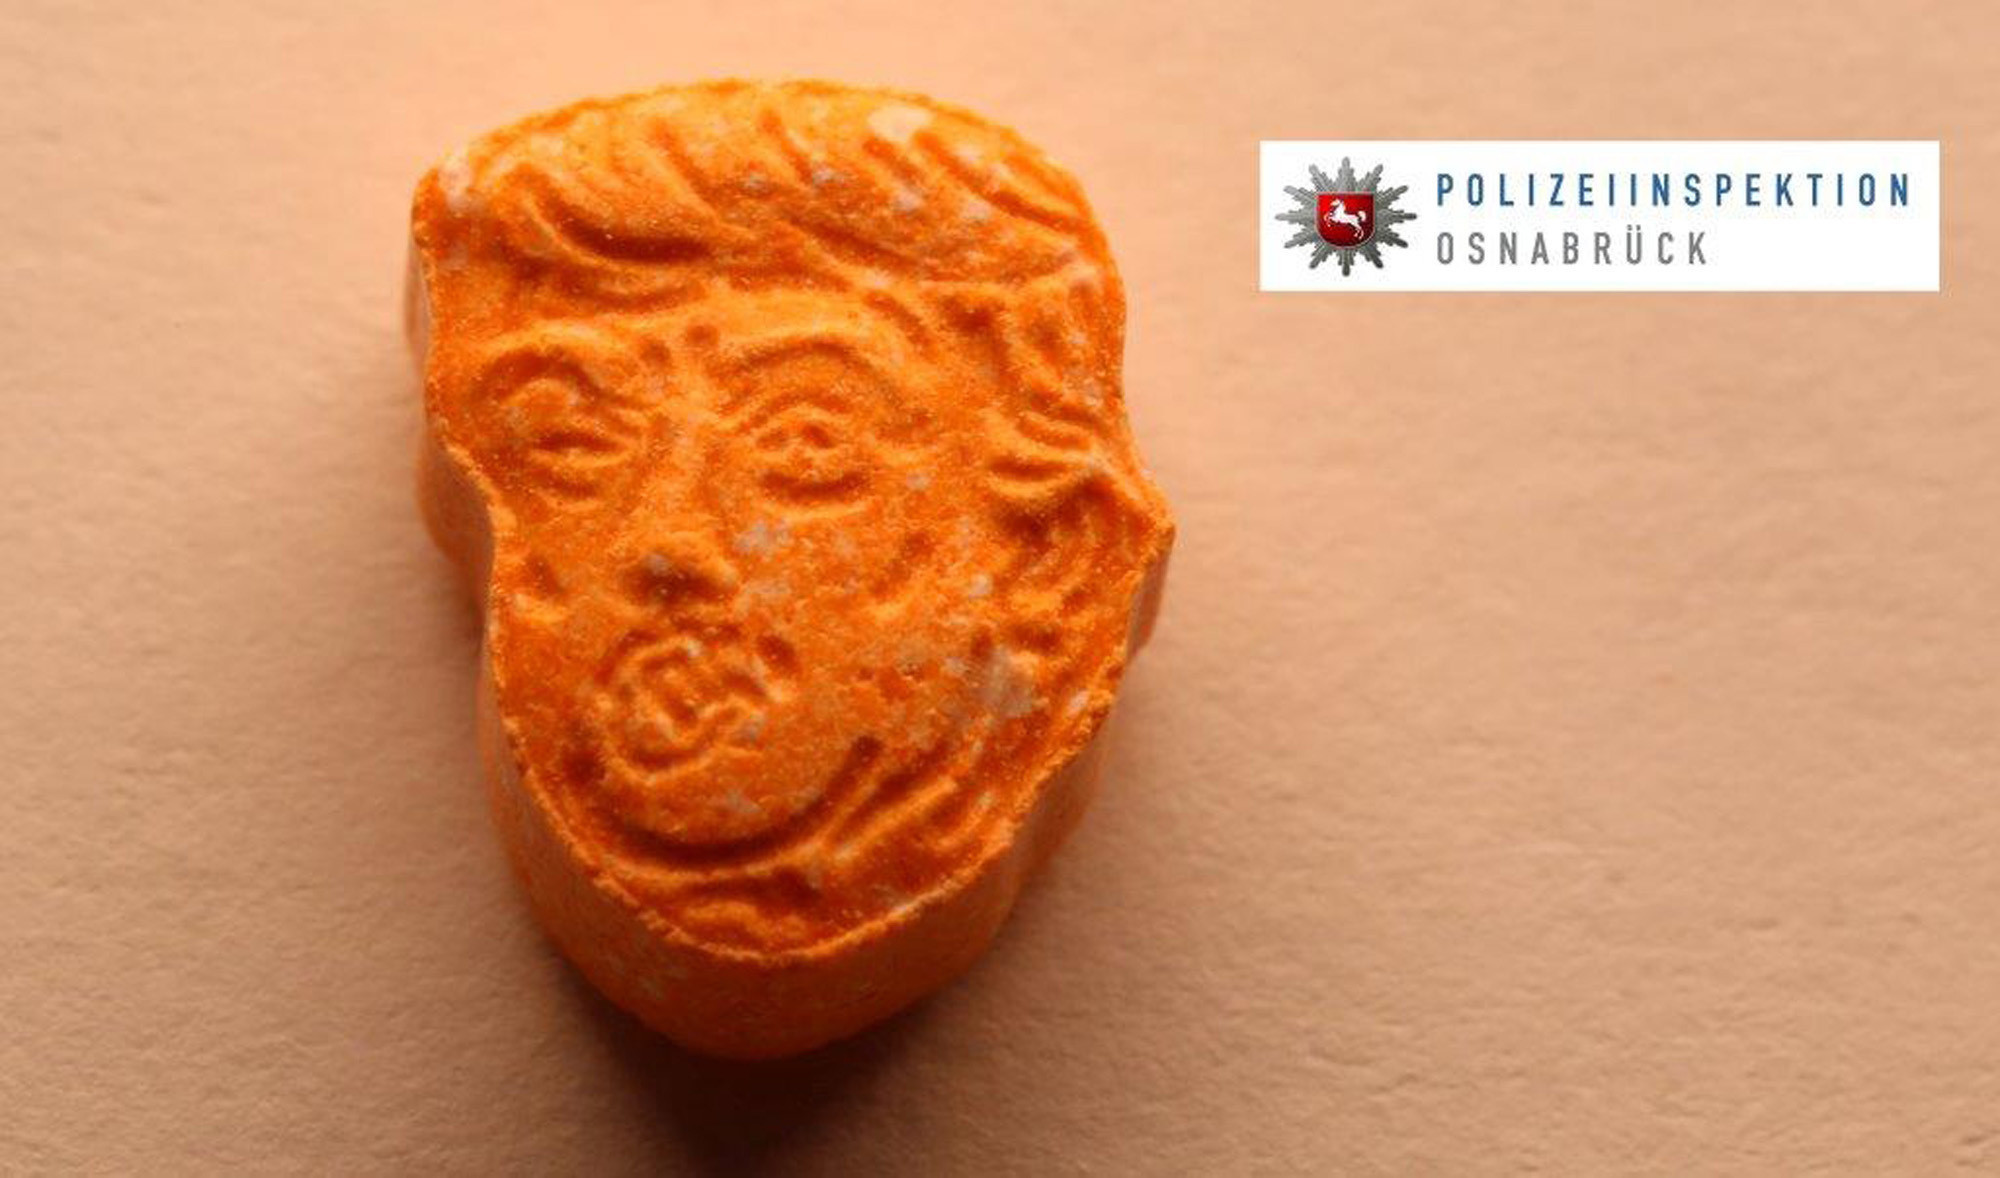 German police seize thousands of orange ecstasy pills with Trump's face on them